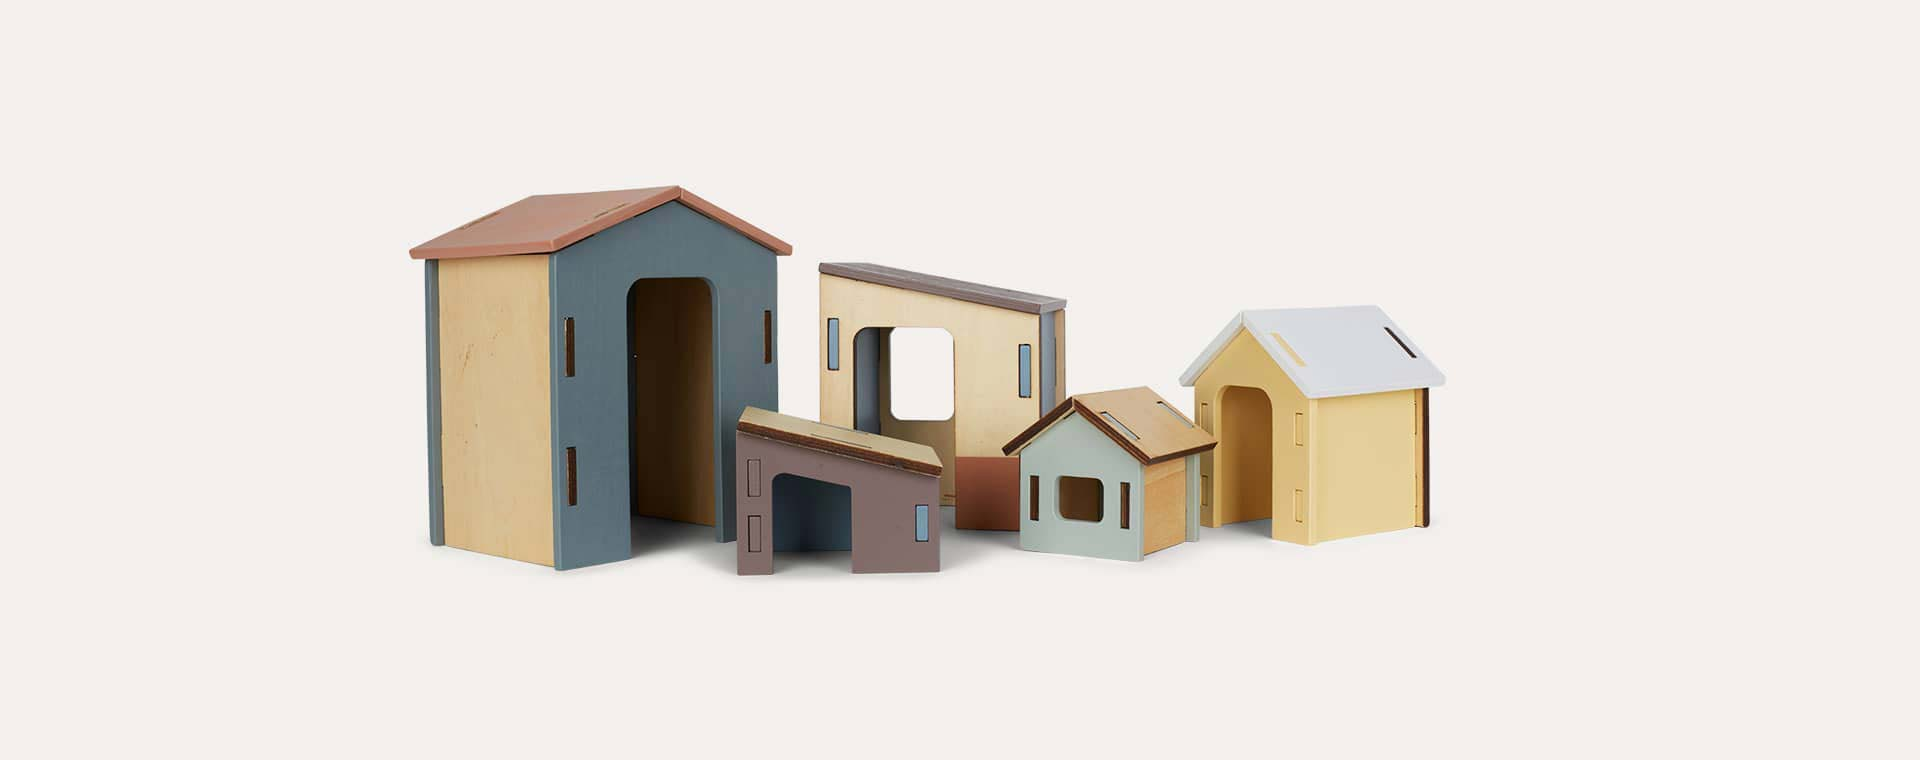 Multi Kid's Concept Wooden House Set